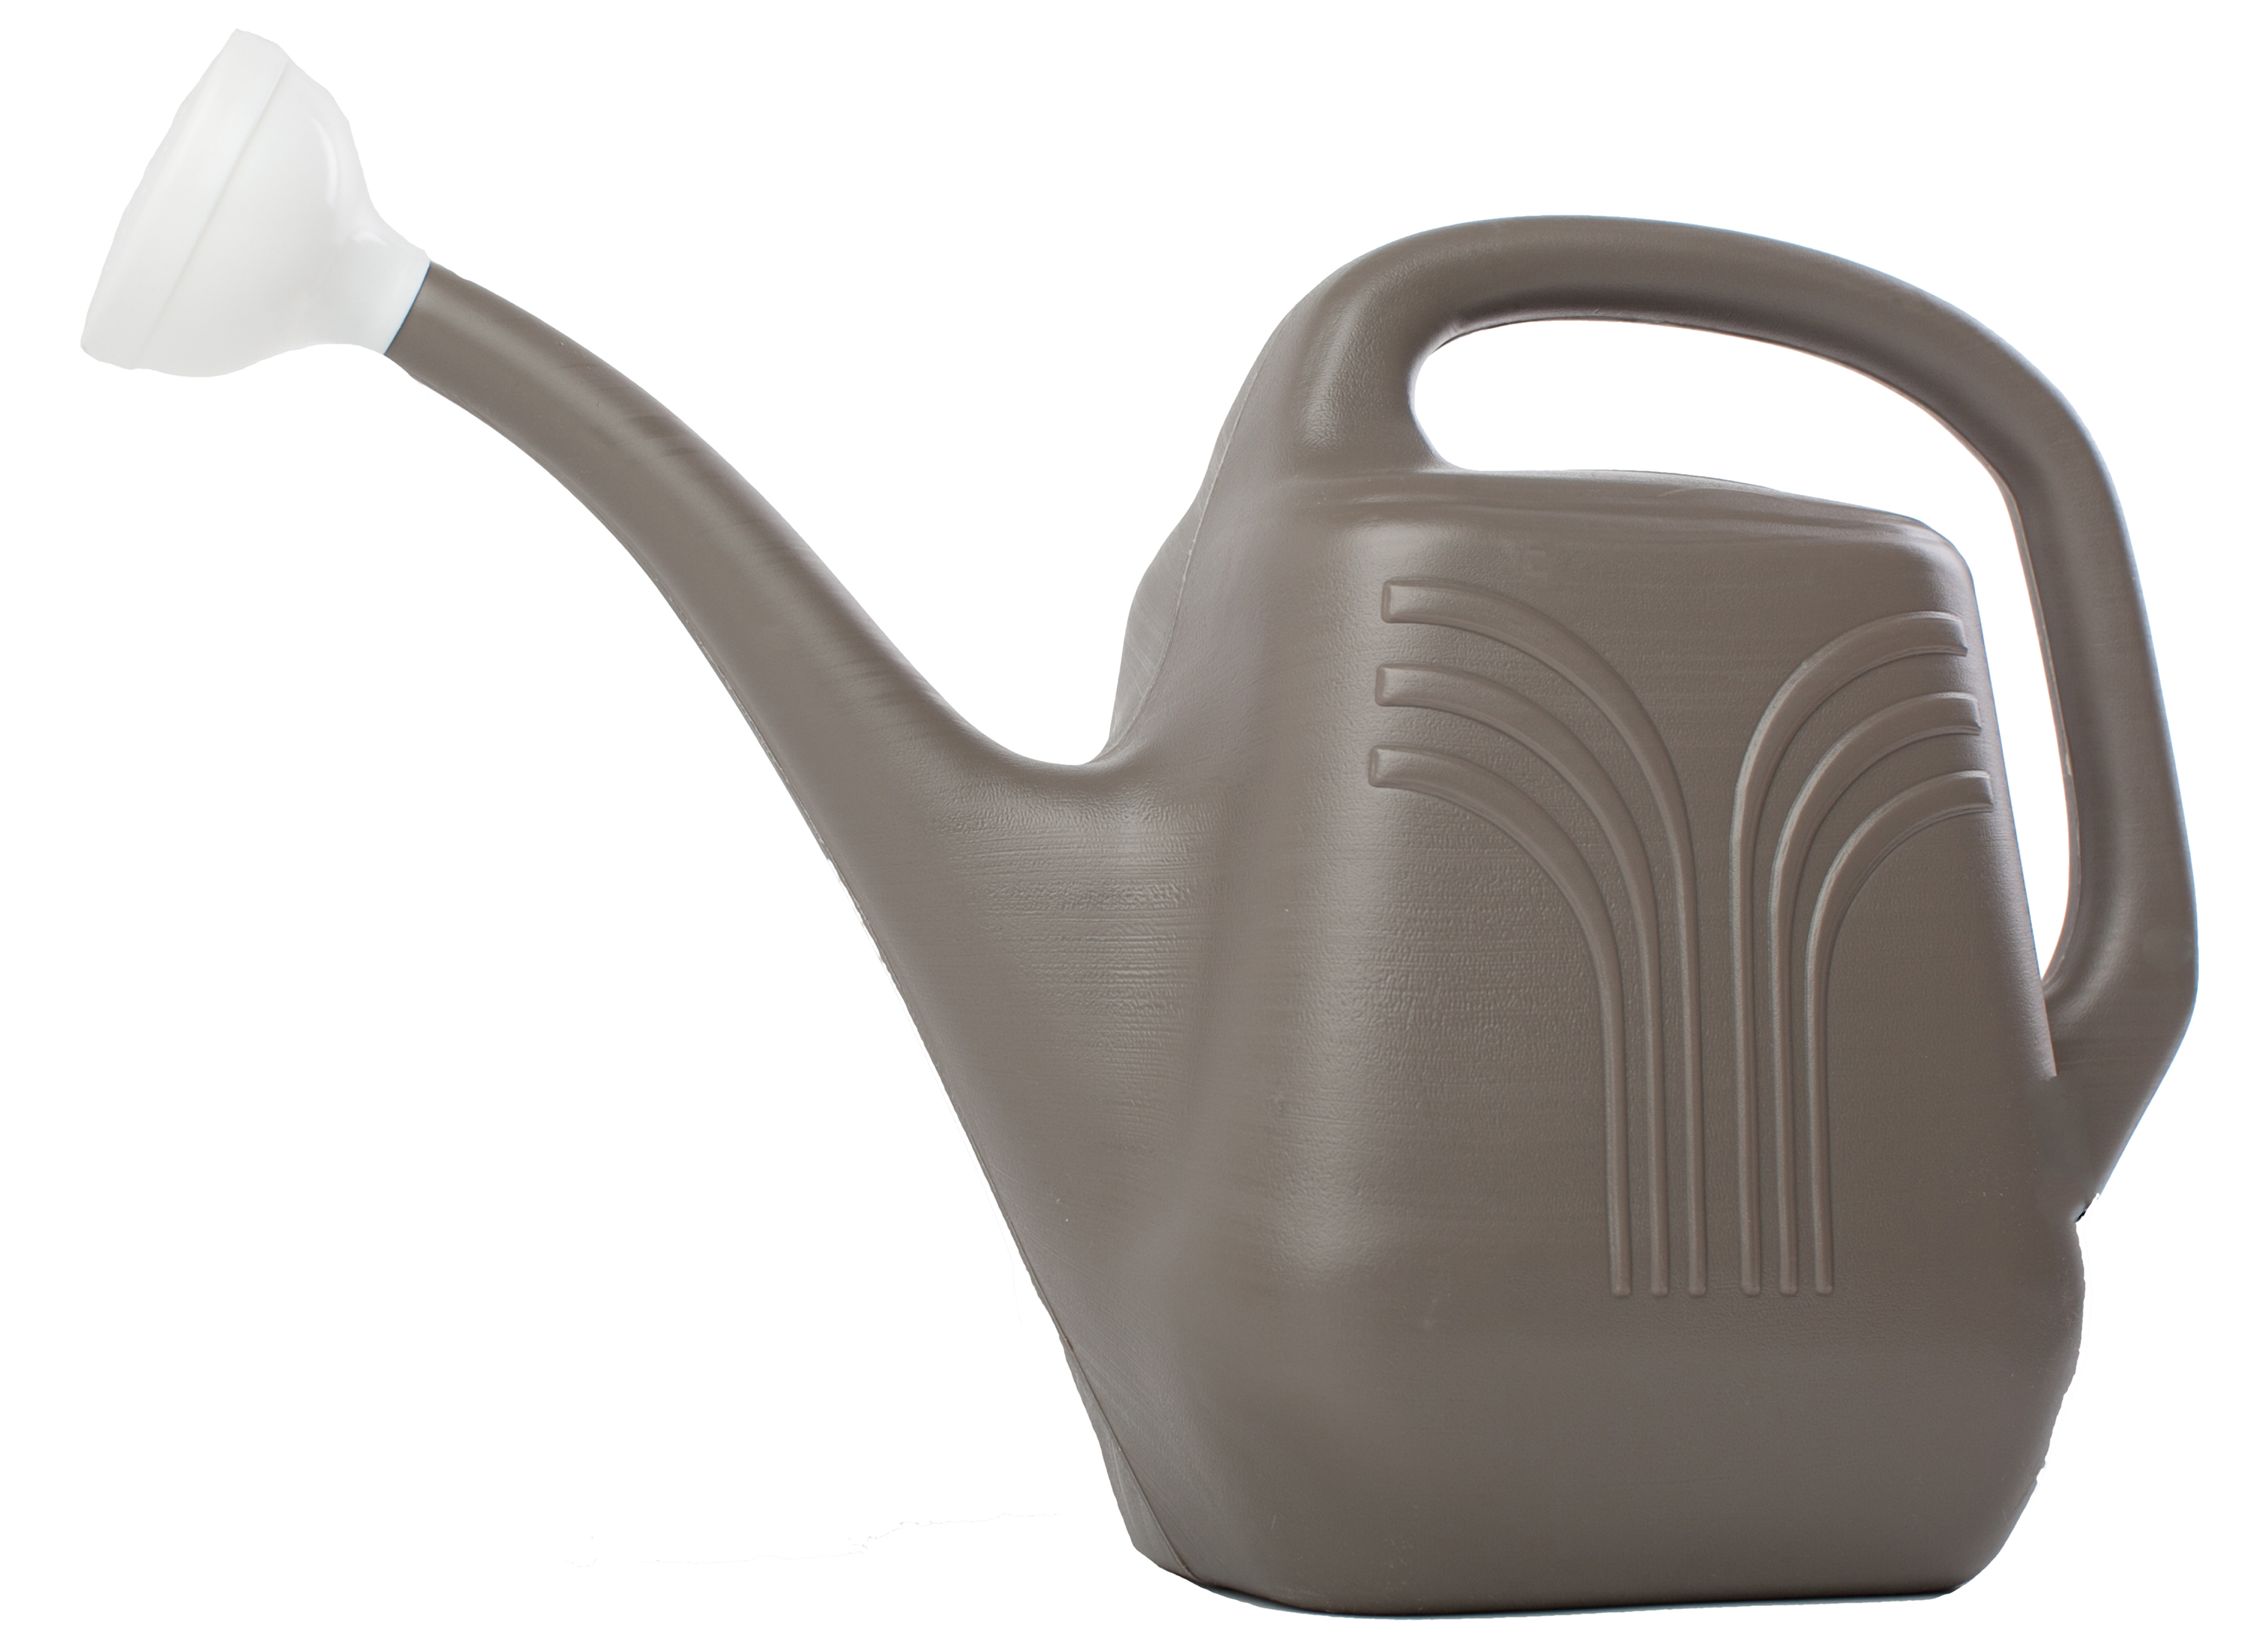 Bloem Classic JW Watering Can 2 Gallon Peppercorn by Bloem